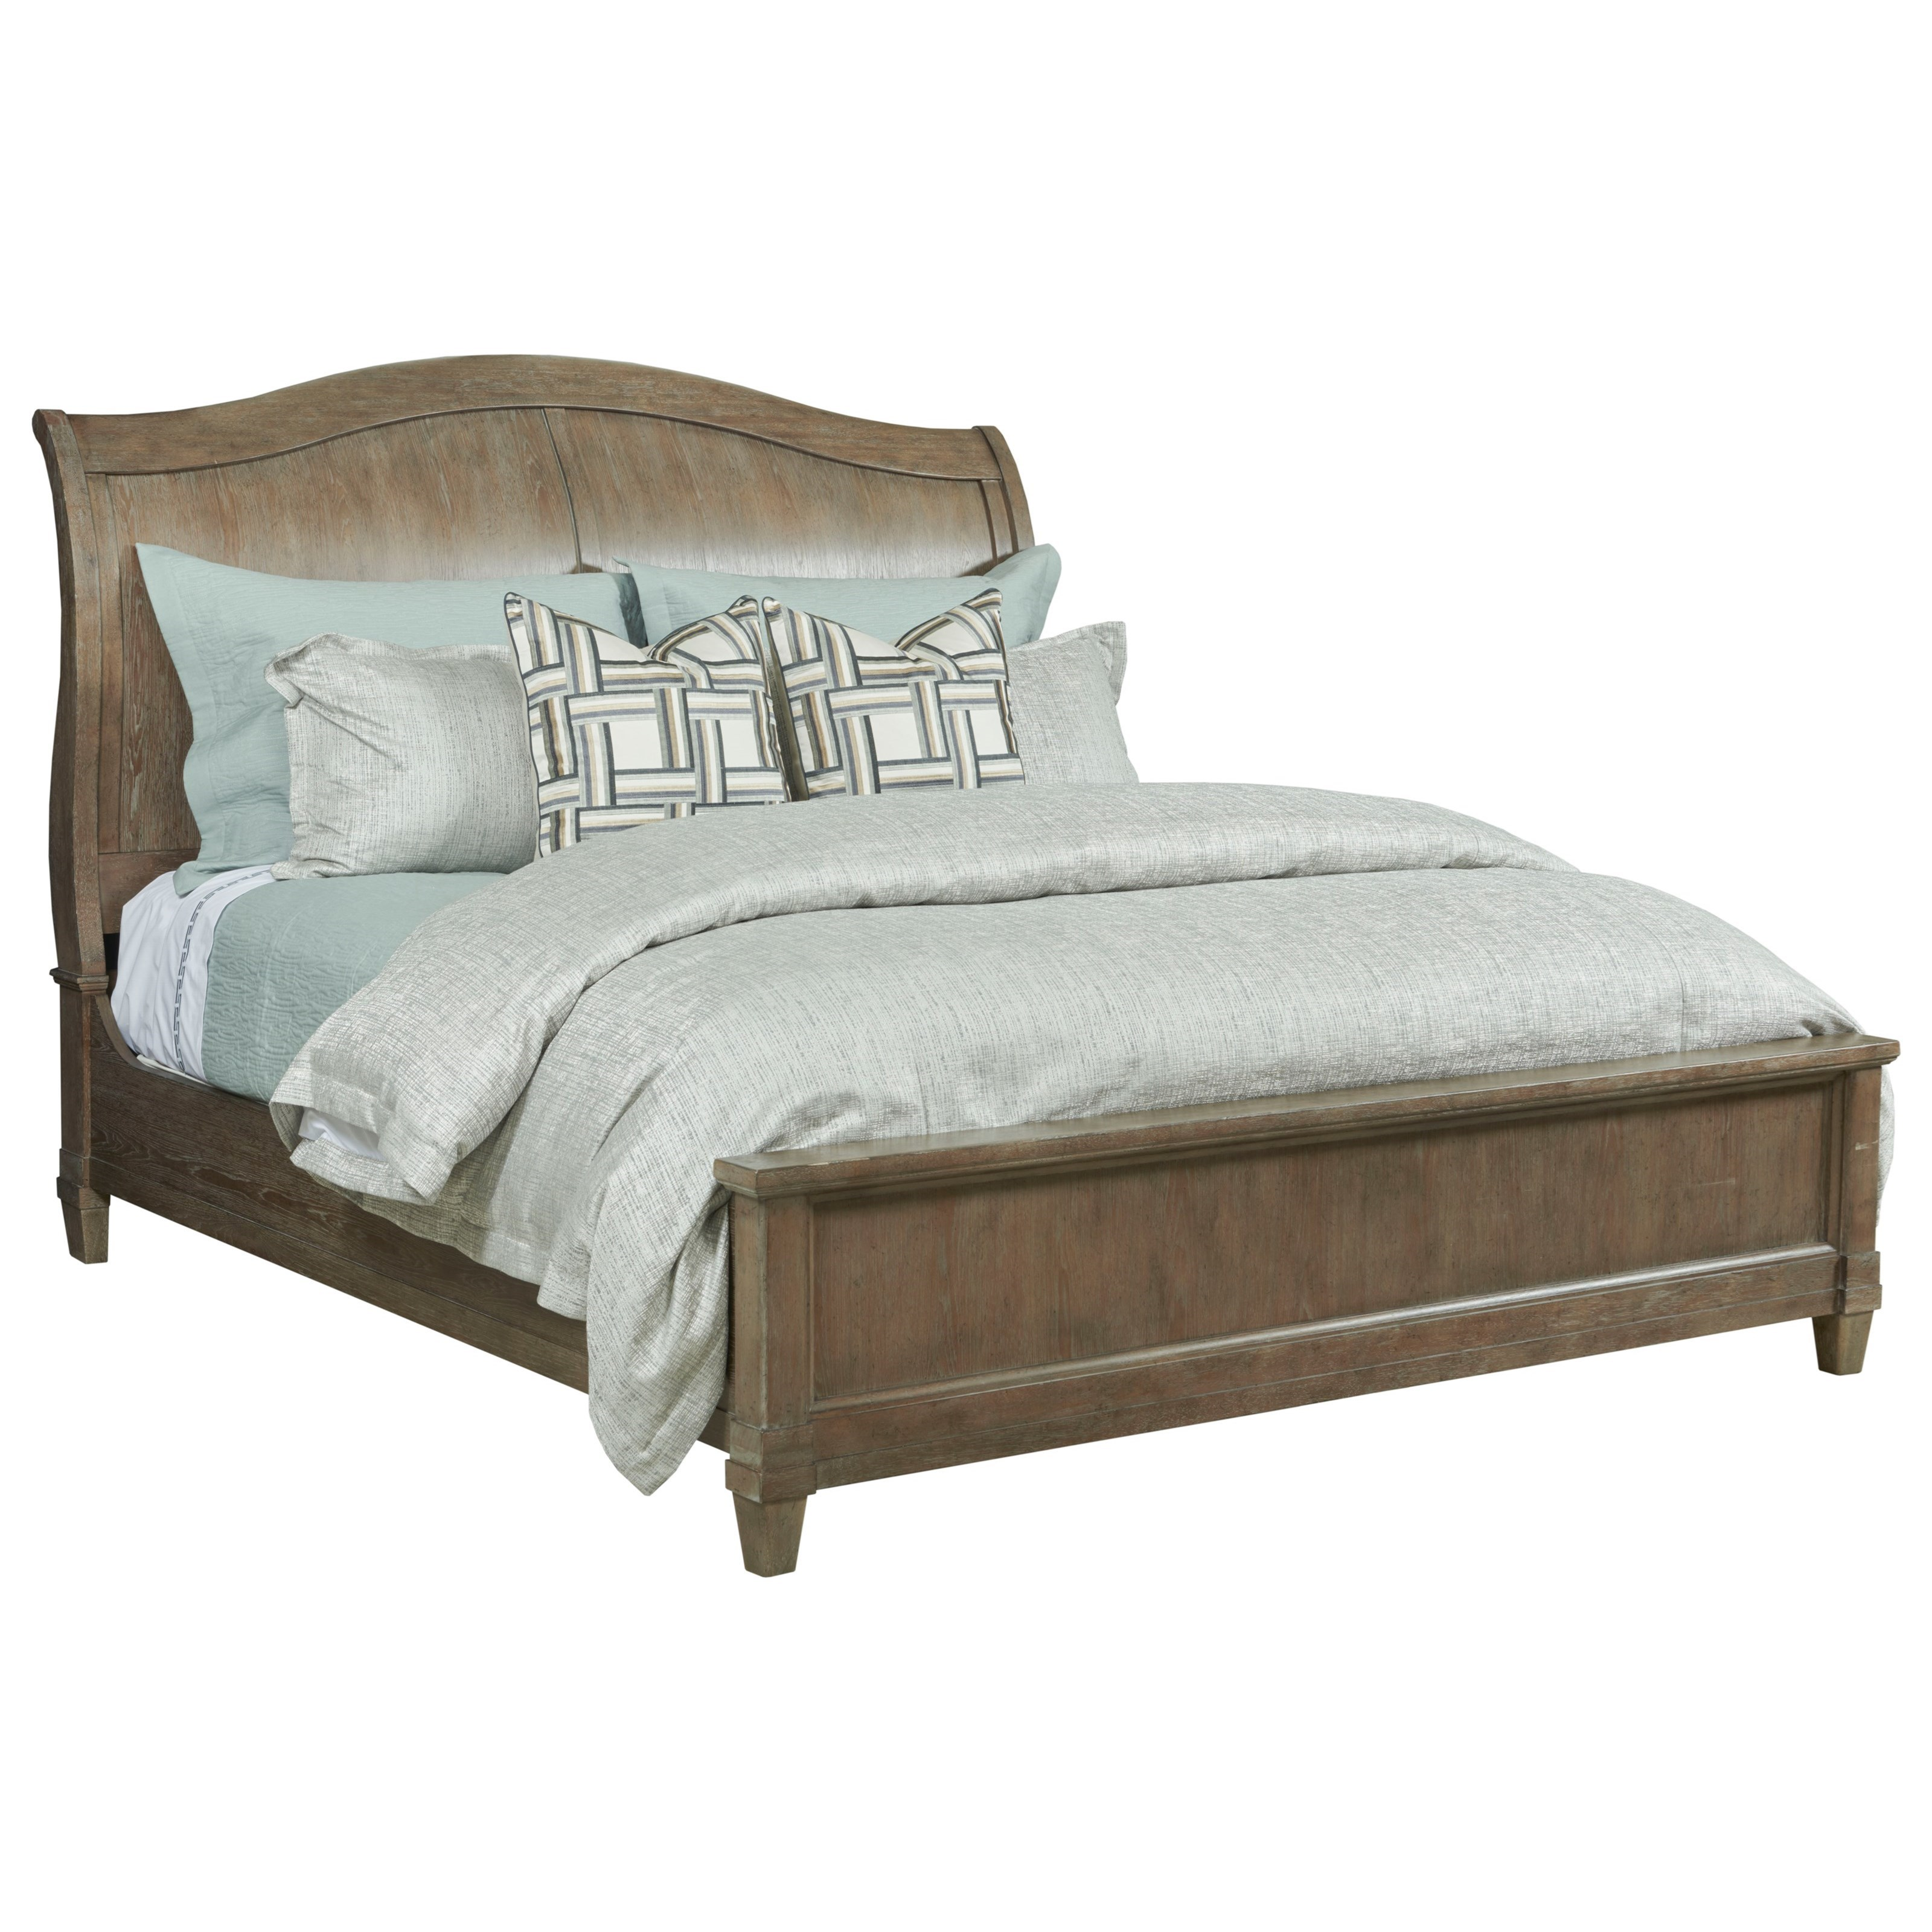 Anson Queen Sleigh Bed by American Drew at Northeast Factory Direct